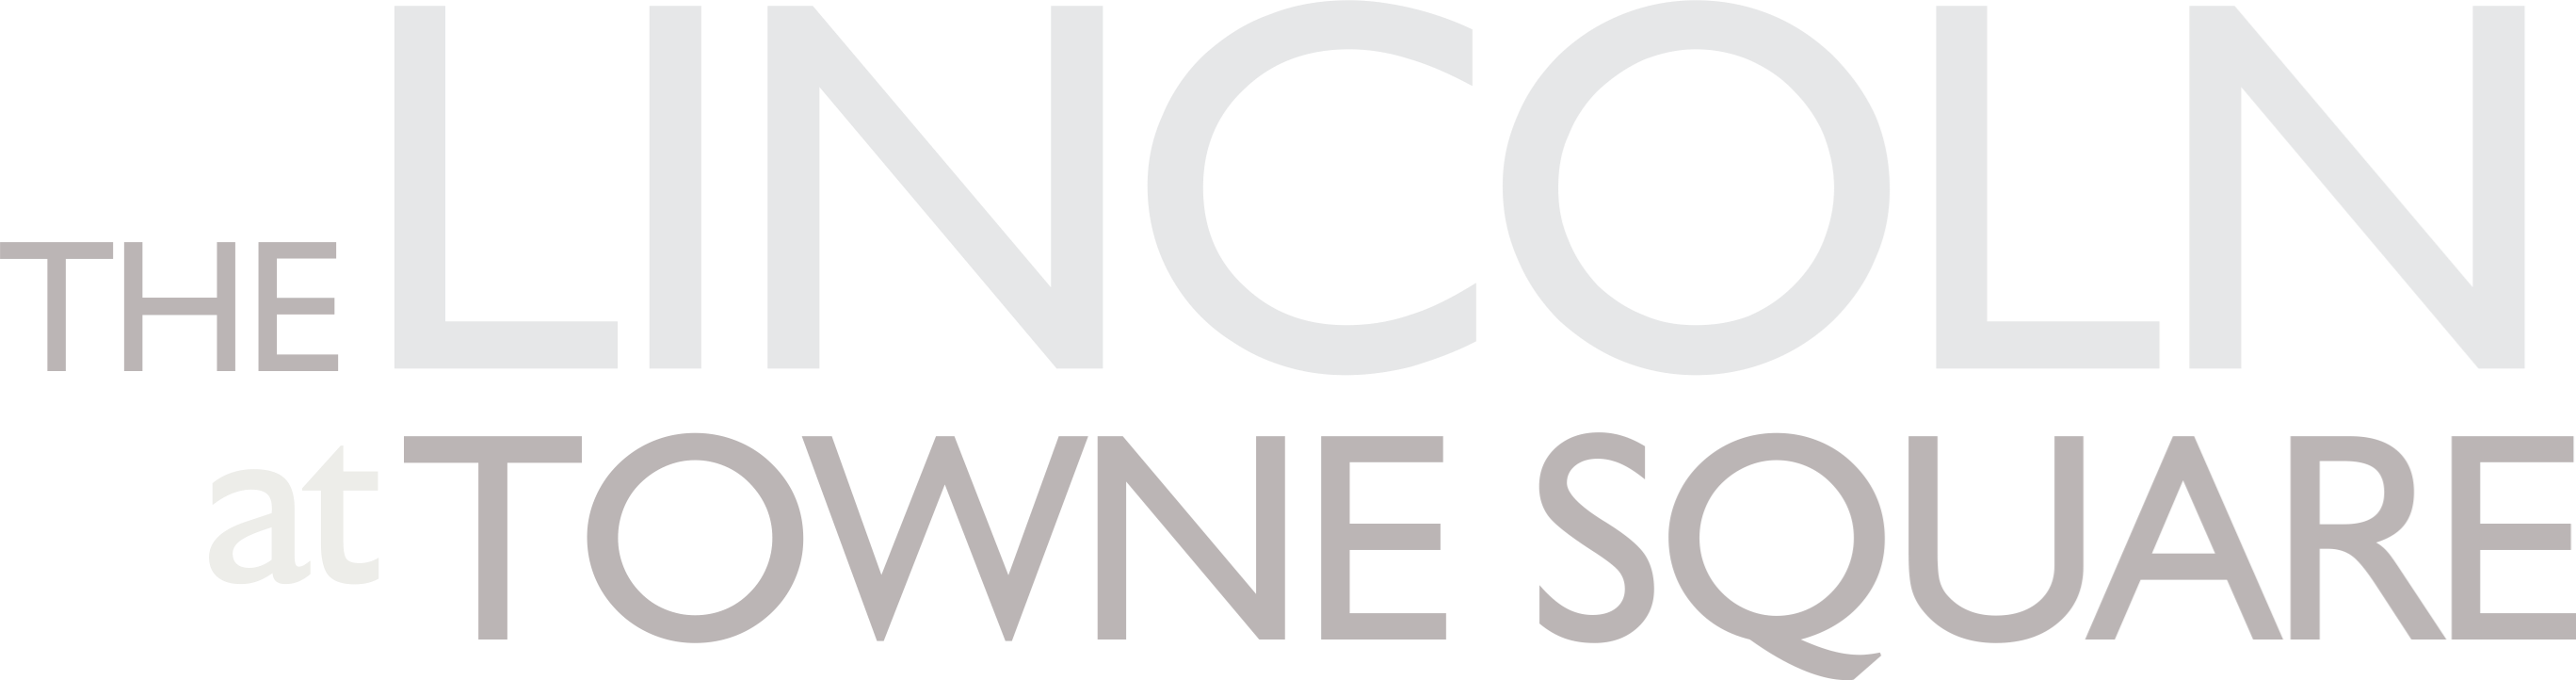 The Lincoln at Towne Square | Property Logo Off White